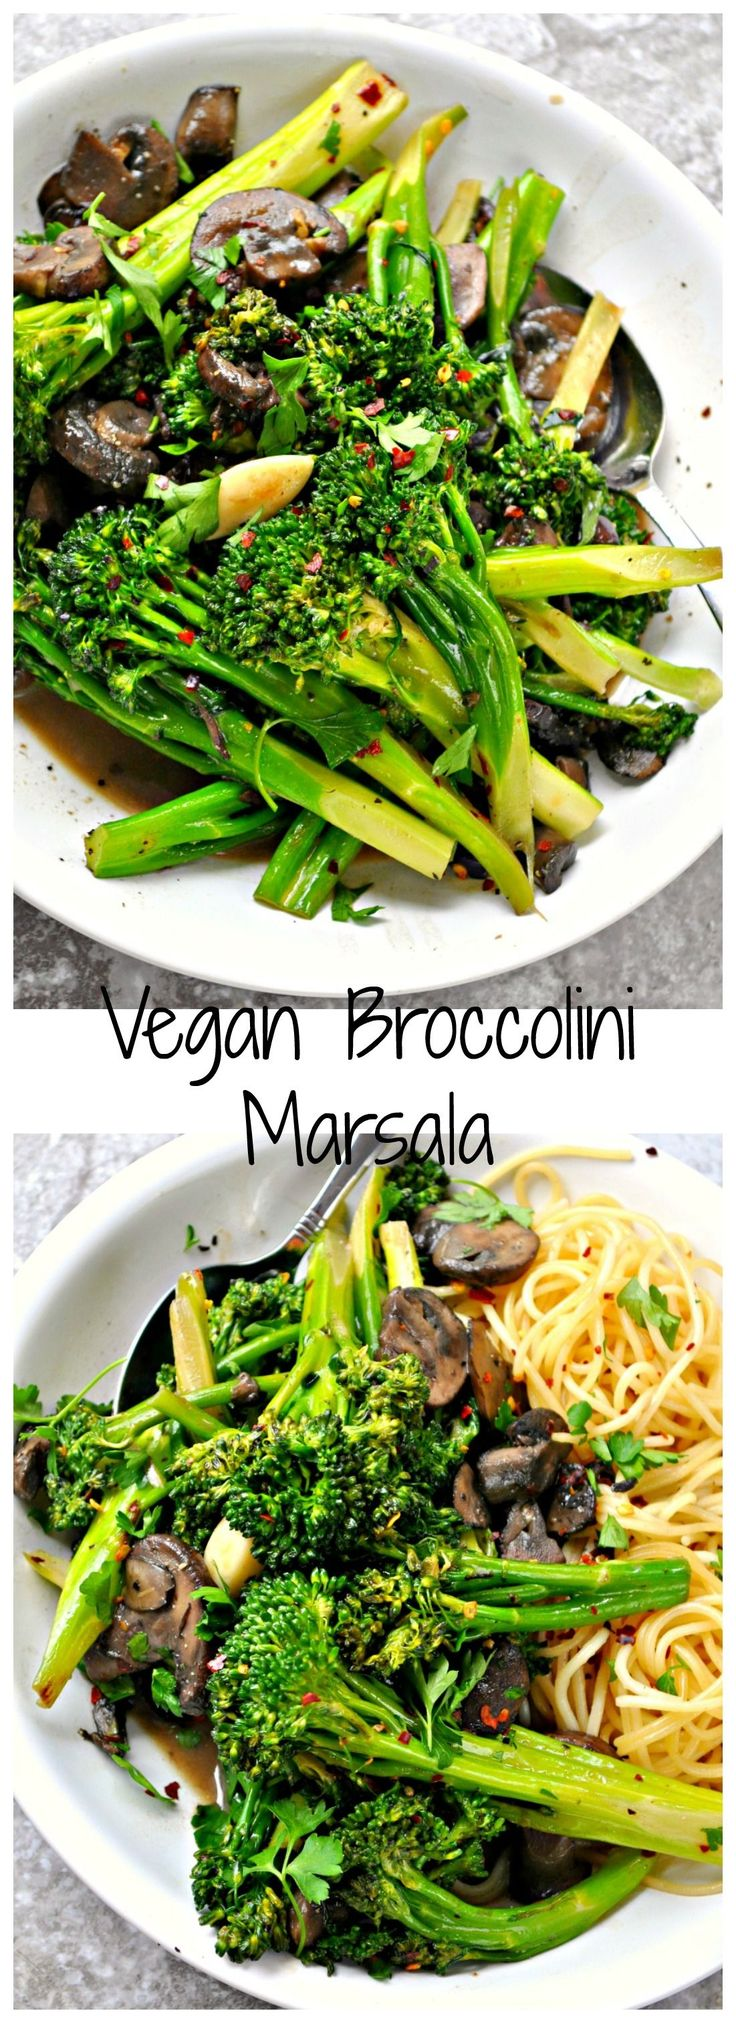 This broccolini Marsala is the perfect way to eat yo' veggies. Super garlicky broccolini sauteed and then tossed in a mushroom Marsala sauce!